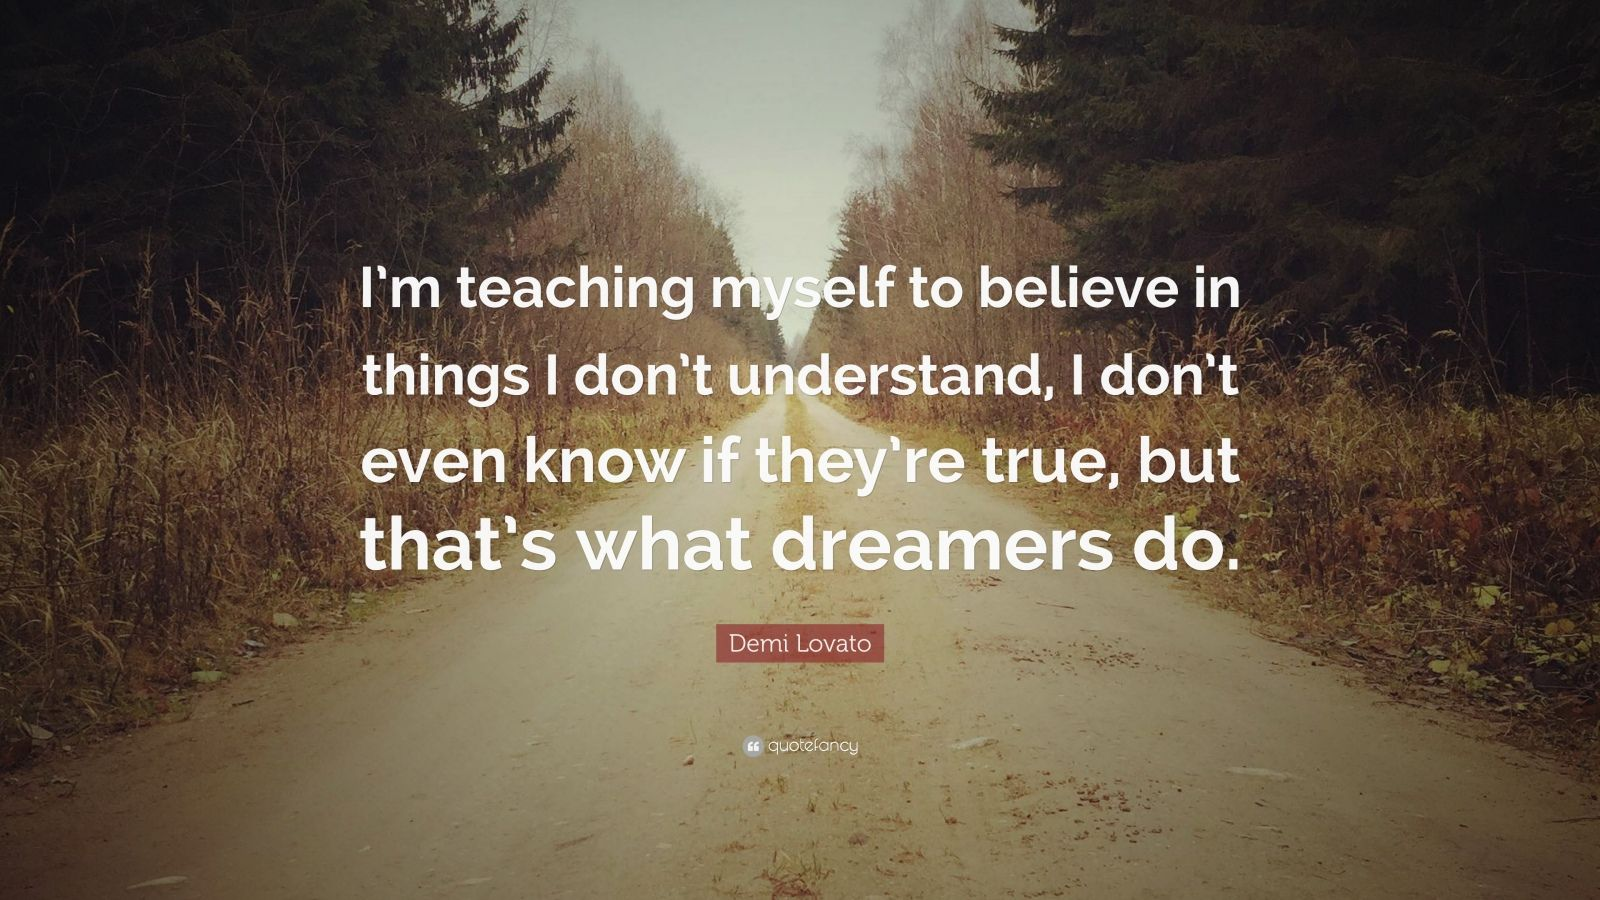 "Demi Lovato Quote: ""I'm teaching myself to believe in things I don't understand, I don't even know if they're true, but that's what dreamers do."""